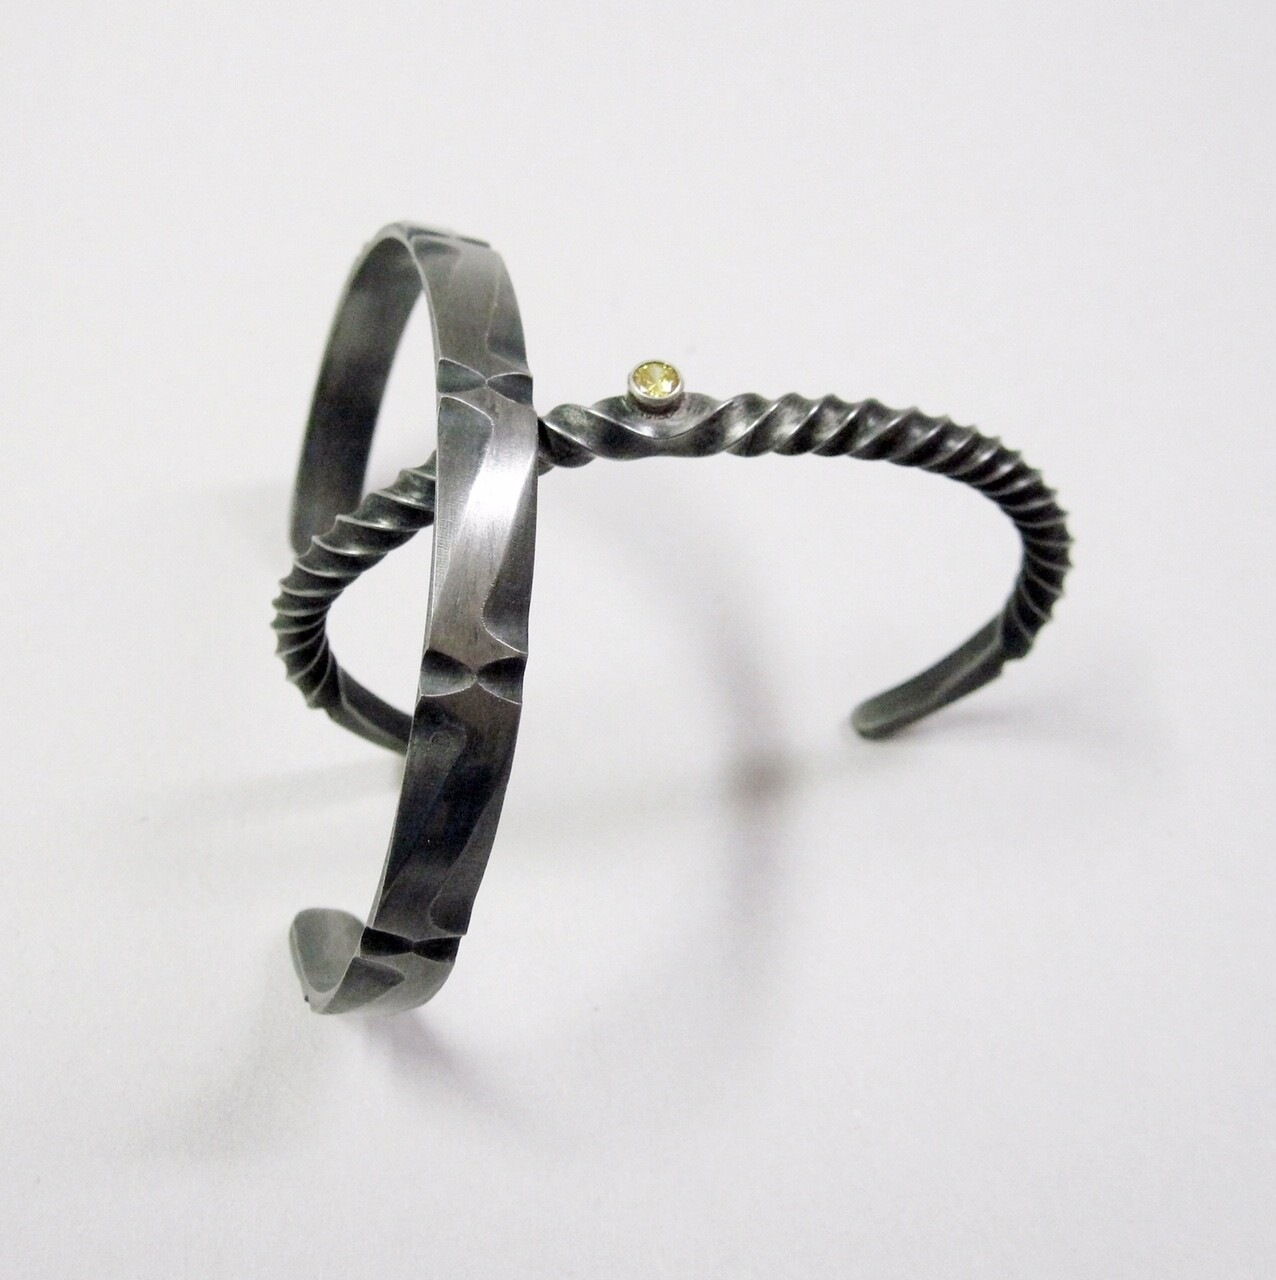 Combining Steel and Precious Metals for Jewelry with Joe Clift | FEB. 22 - 23, 9AM - 4PM